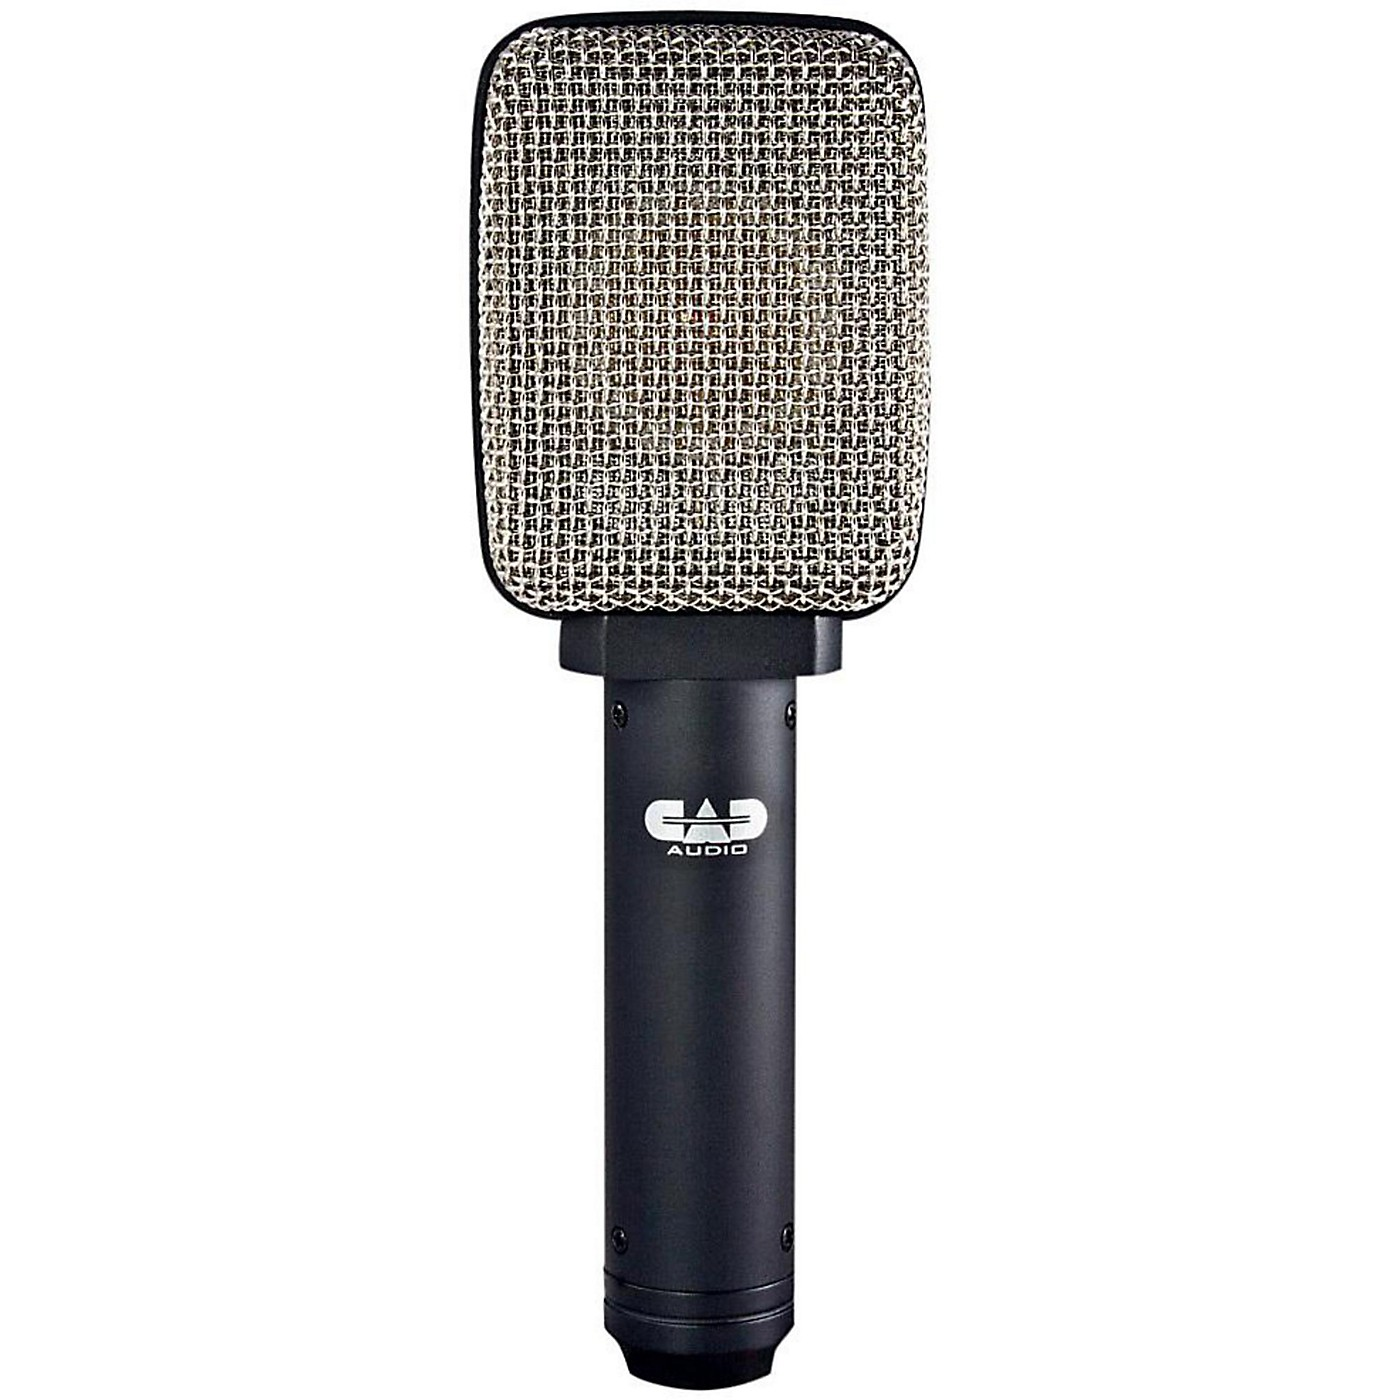 CadLive D84 Large Diaphragm Cardioid Condenser Cabinet/Percussion Microphone thumbnail